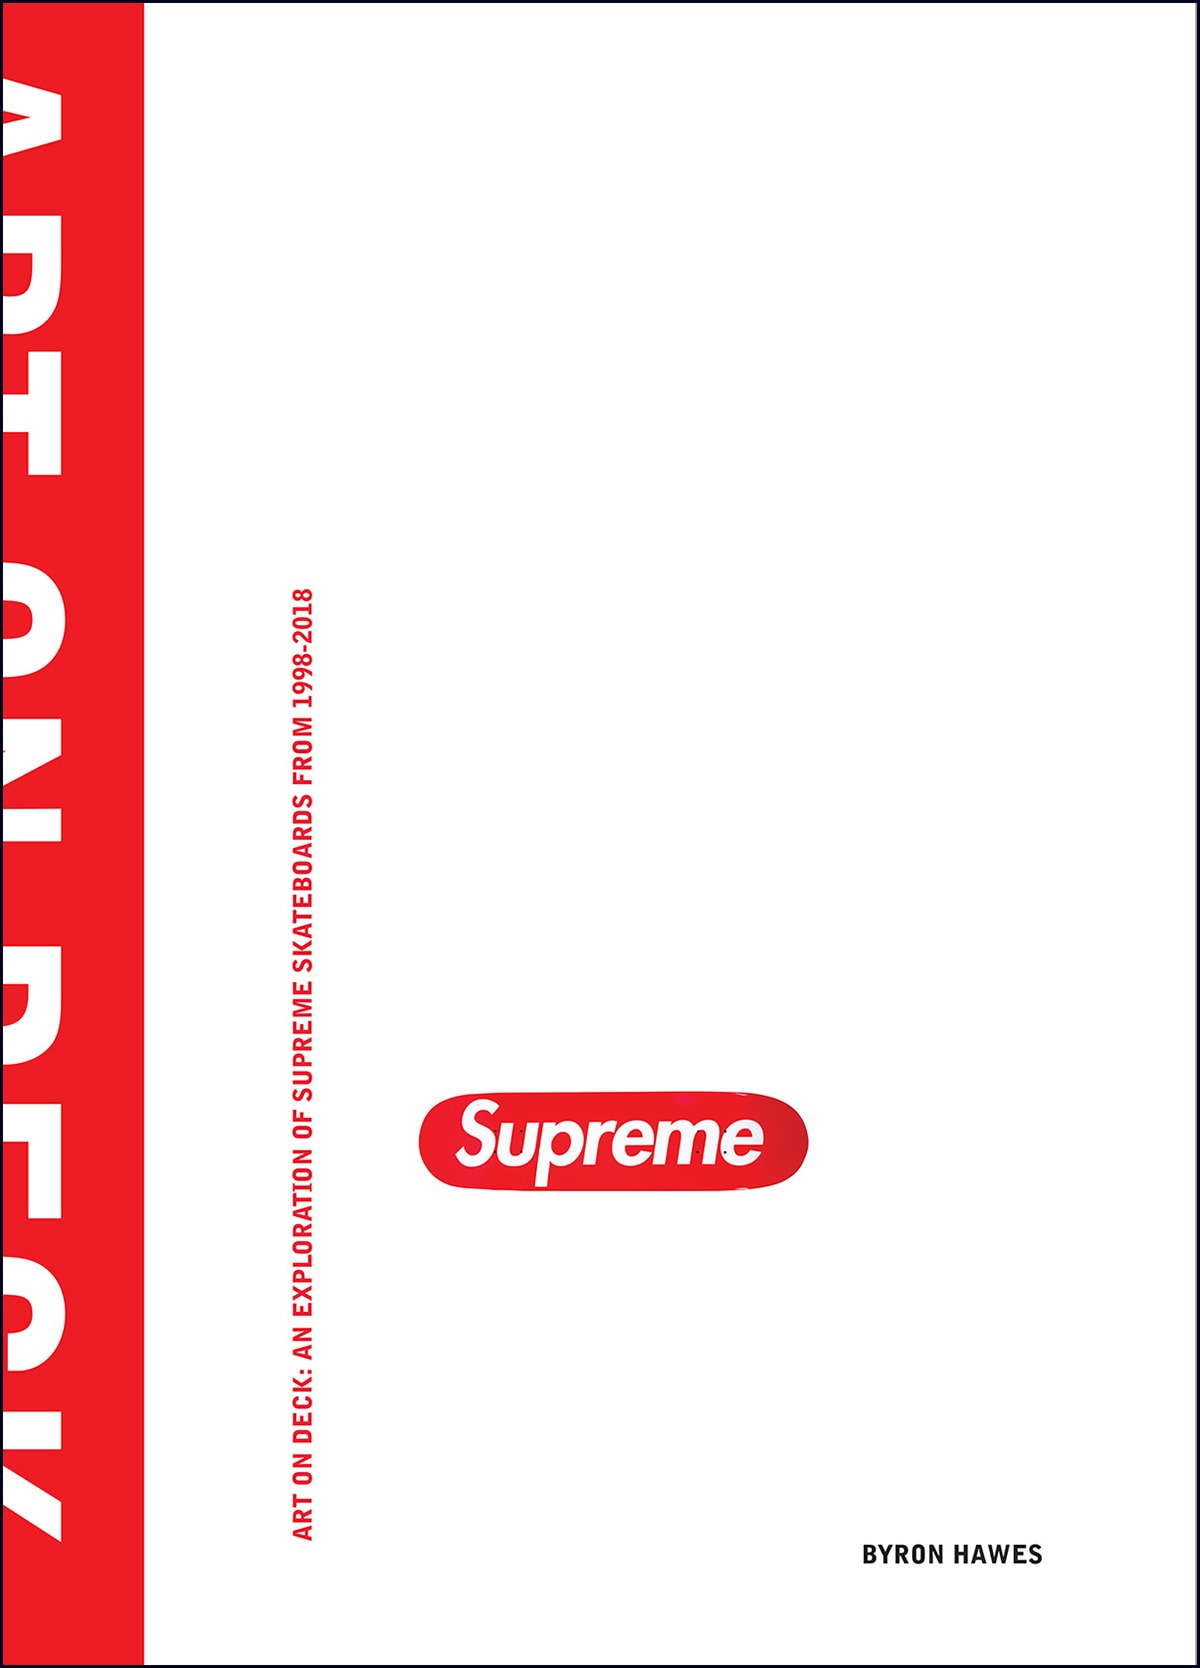 HED: Fashion and art critic explores Supreme's history of design and skate culture in new art book